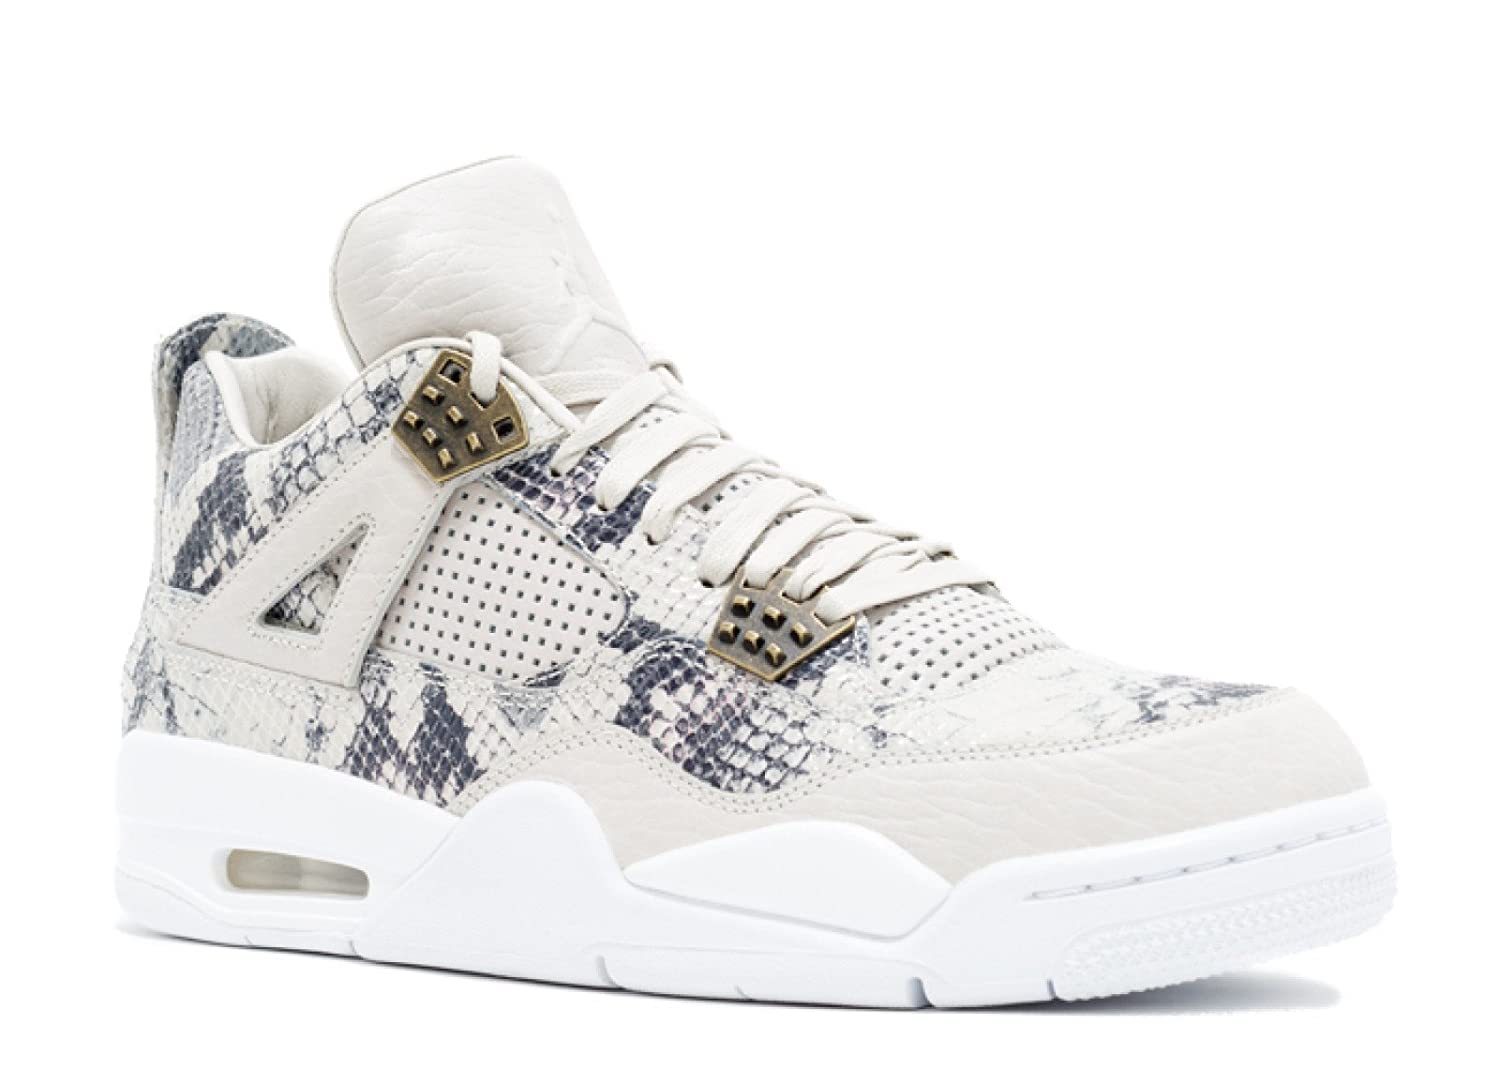 b9d7b0ee8f8 Amazon.com | Air Jordan 4 Retro Premium 'Pinnacle Snakeskin' - 819139-030 -  Size 13.5 | Basketball